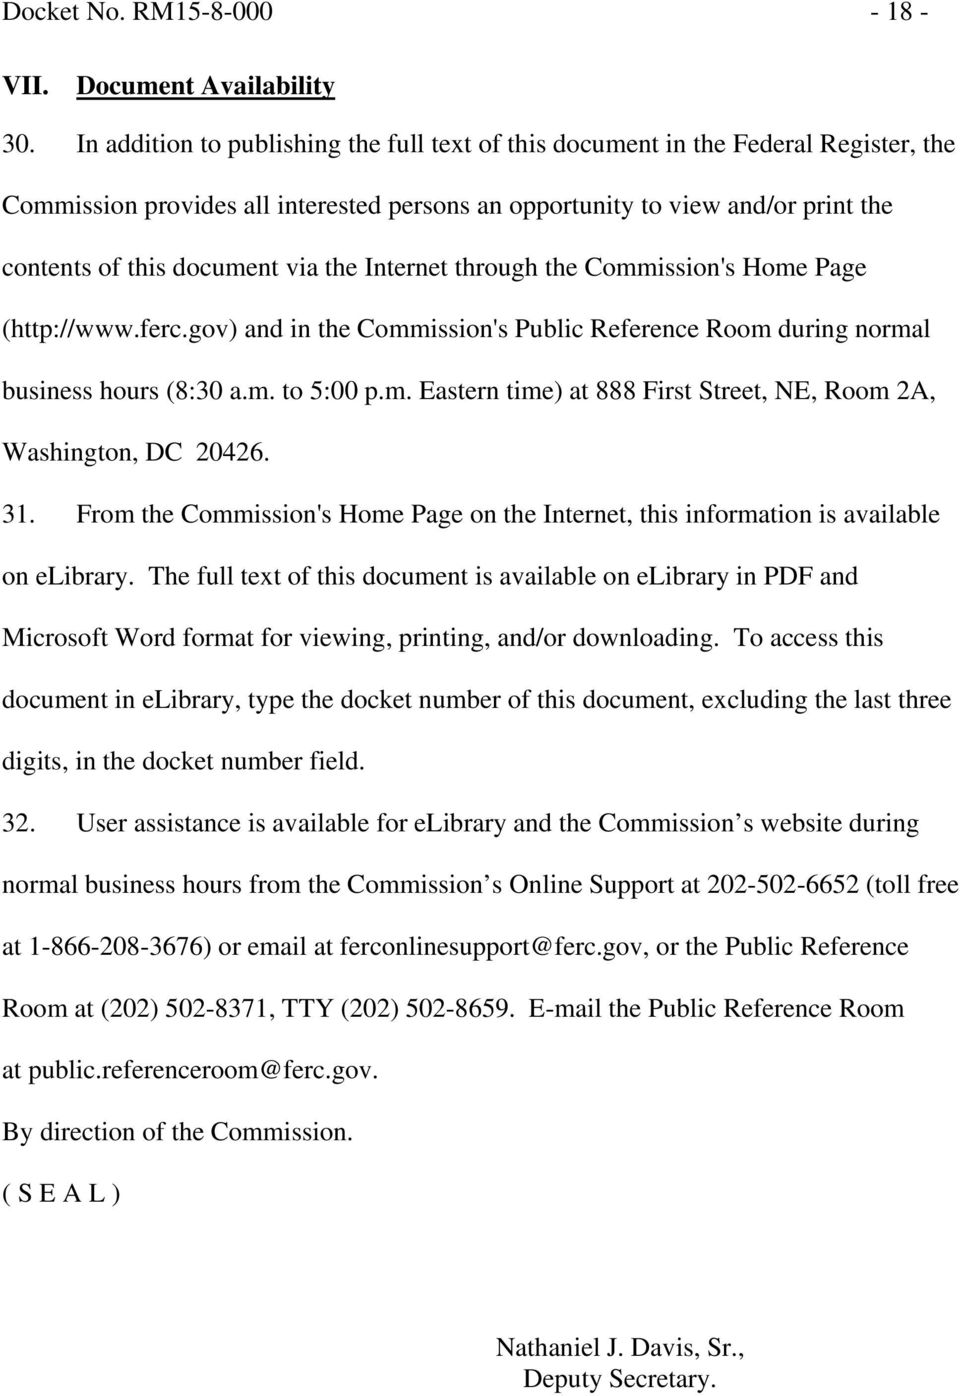 the Internet through the Commission's Home Page (http://www.ferc.gov) and in the Commission's Public Reference Room during normal business hours (8:30 a.m. to 5:00 p.m. Eastern time) at 888 First Street, NE, Room 2A, Washington, DC 20426.